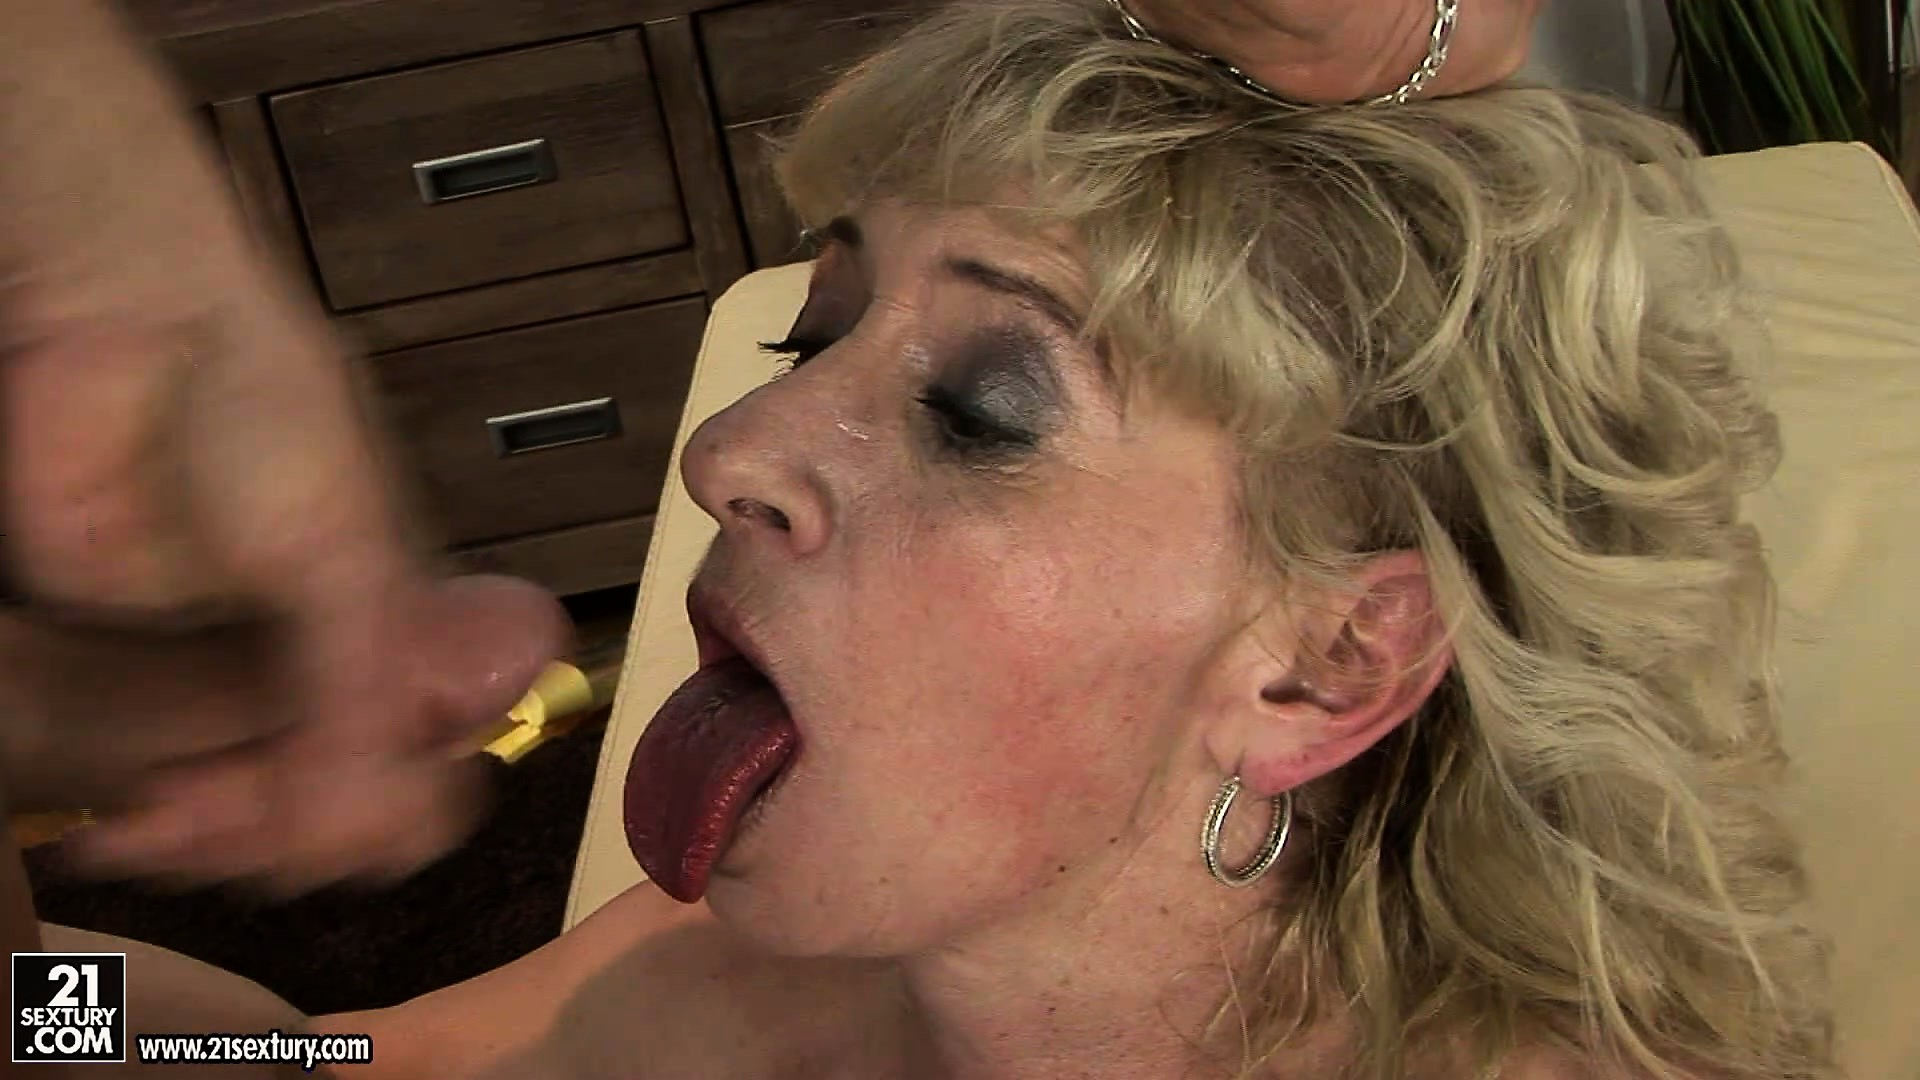 Porn Tube of She Rides Him And Gets Face Fucked And Then Sucks Out His Cum